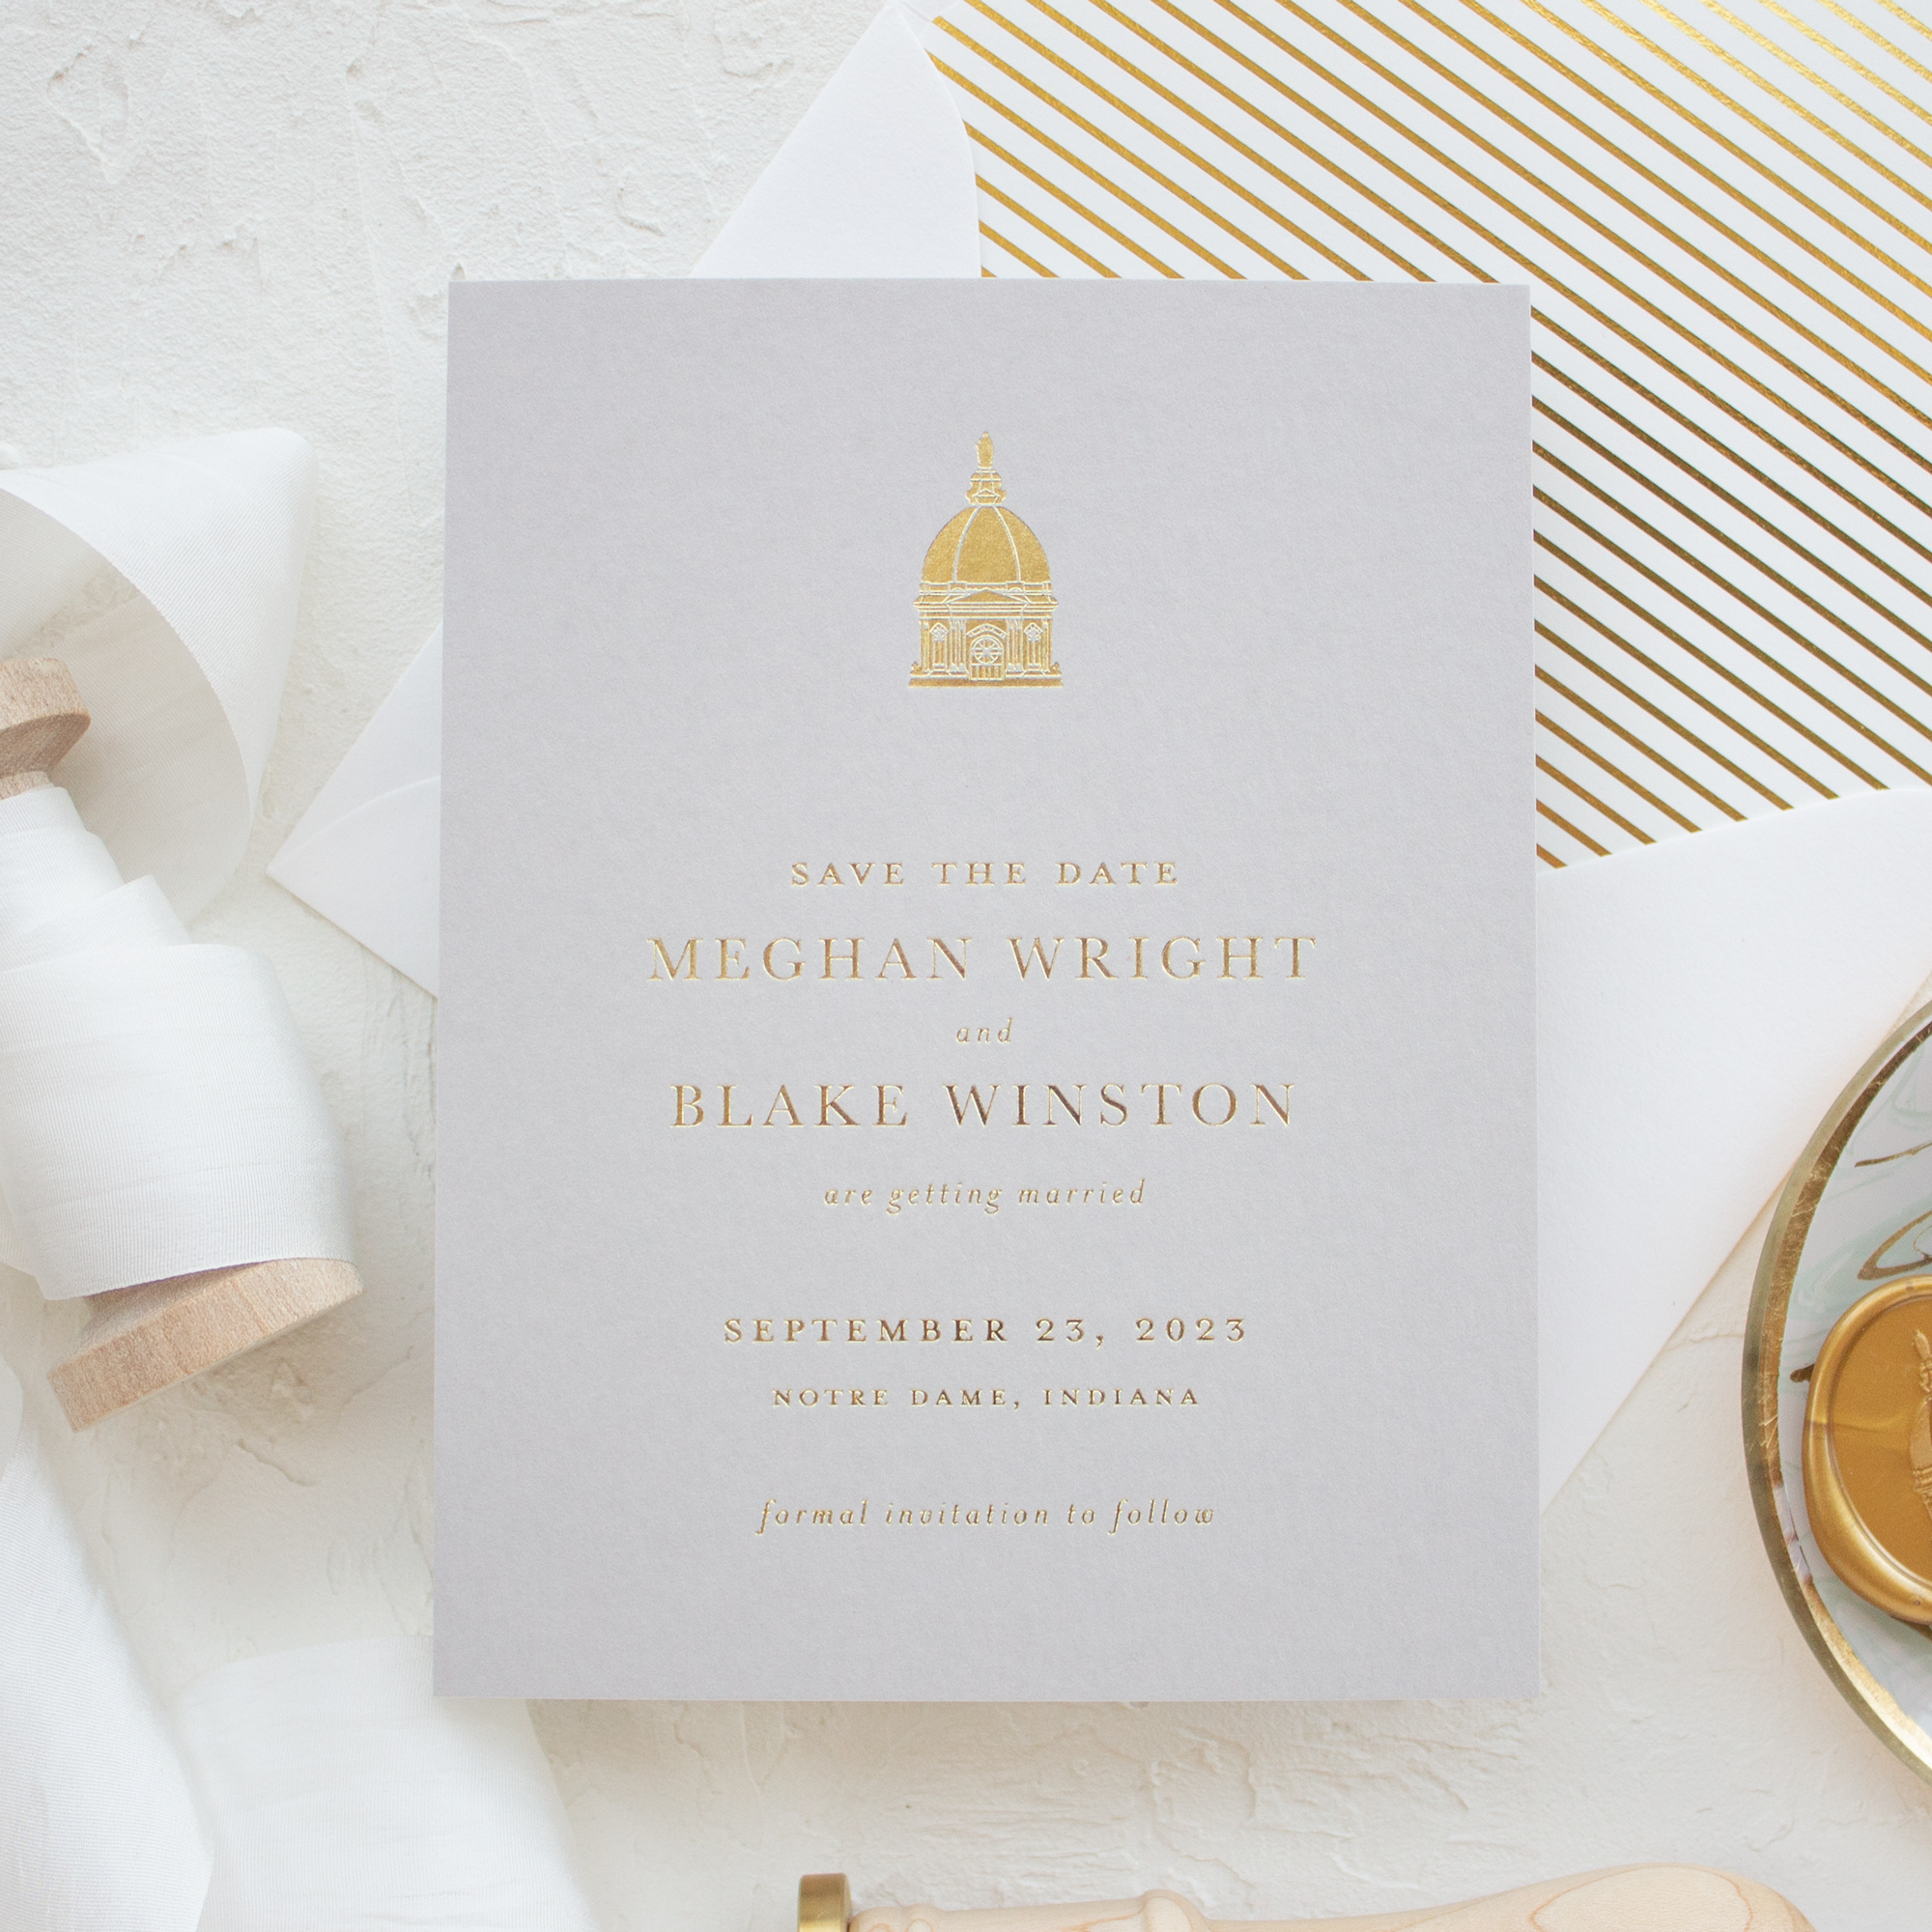 save the date card in gold foil with venue illustration of Notre Dame